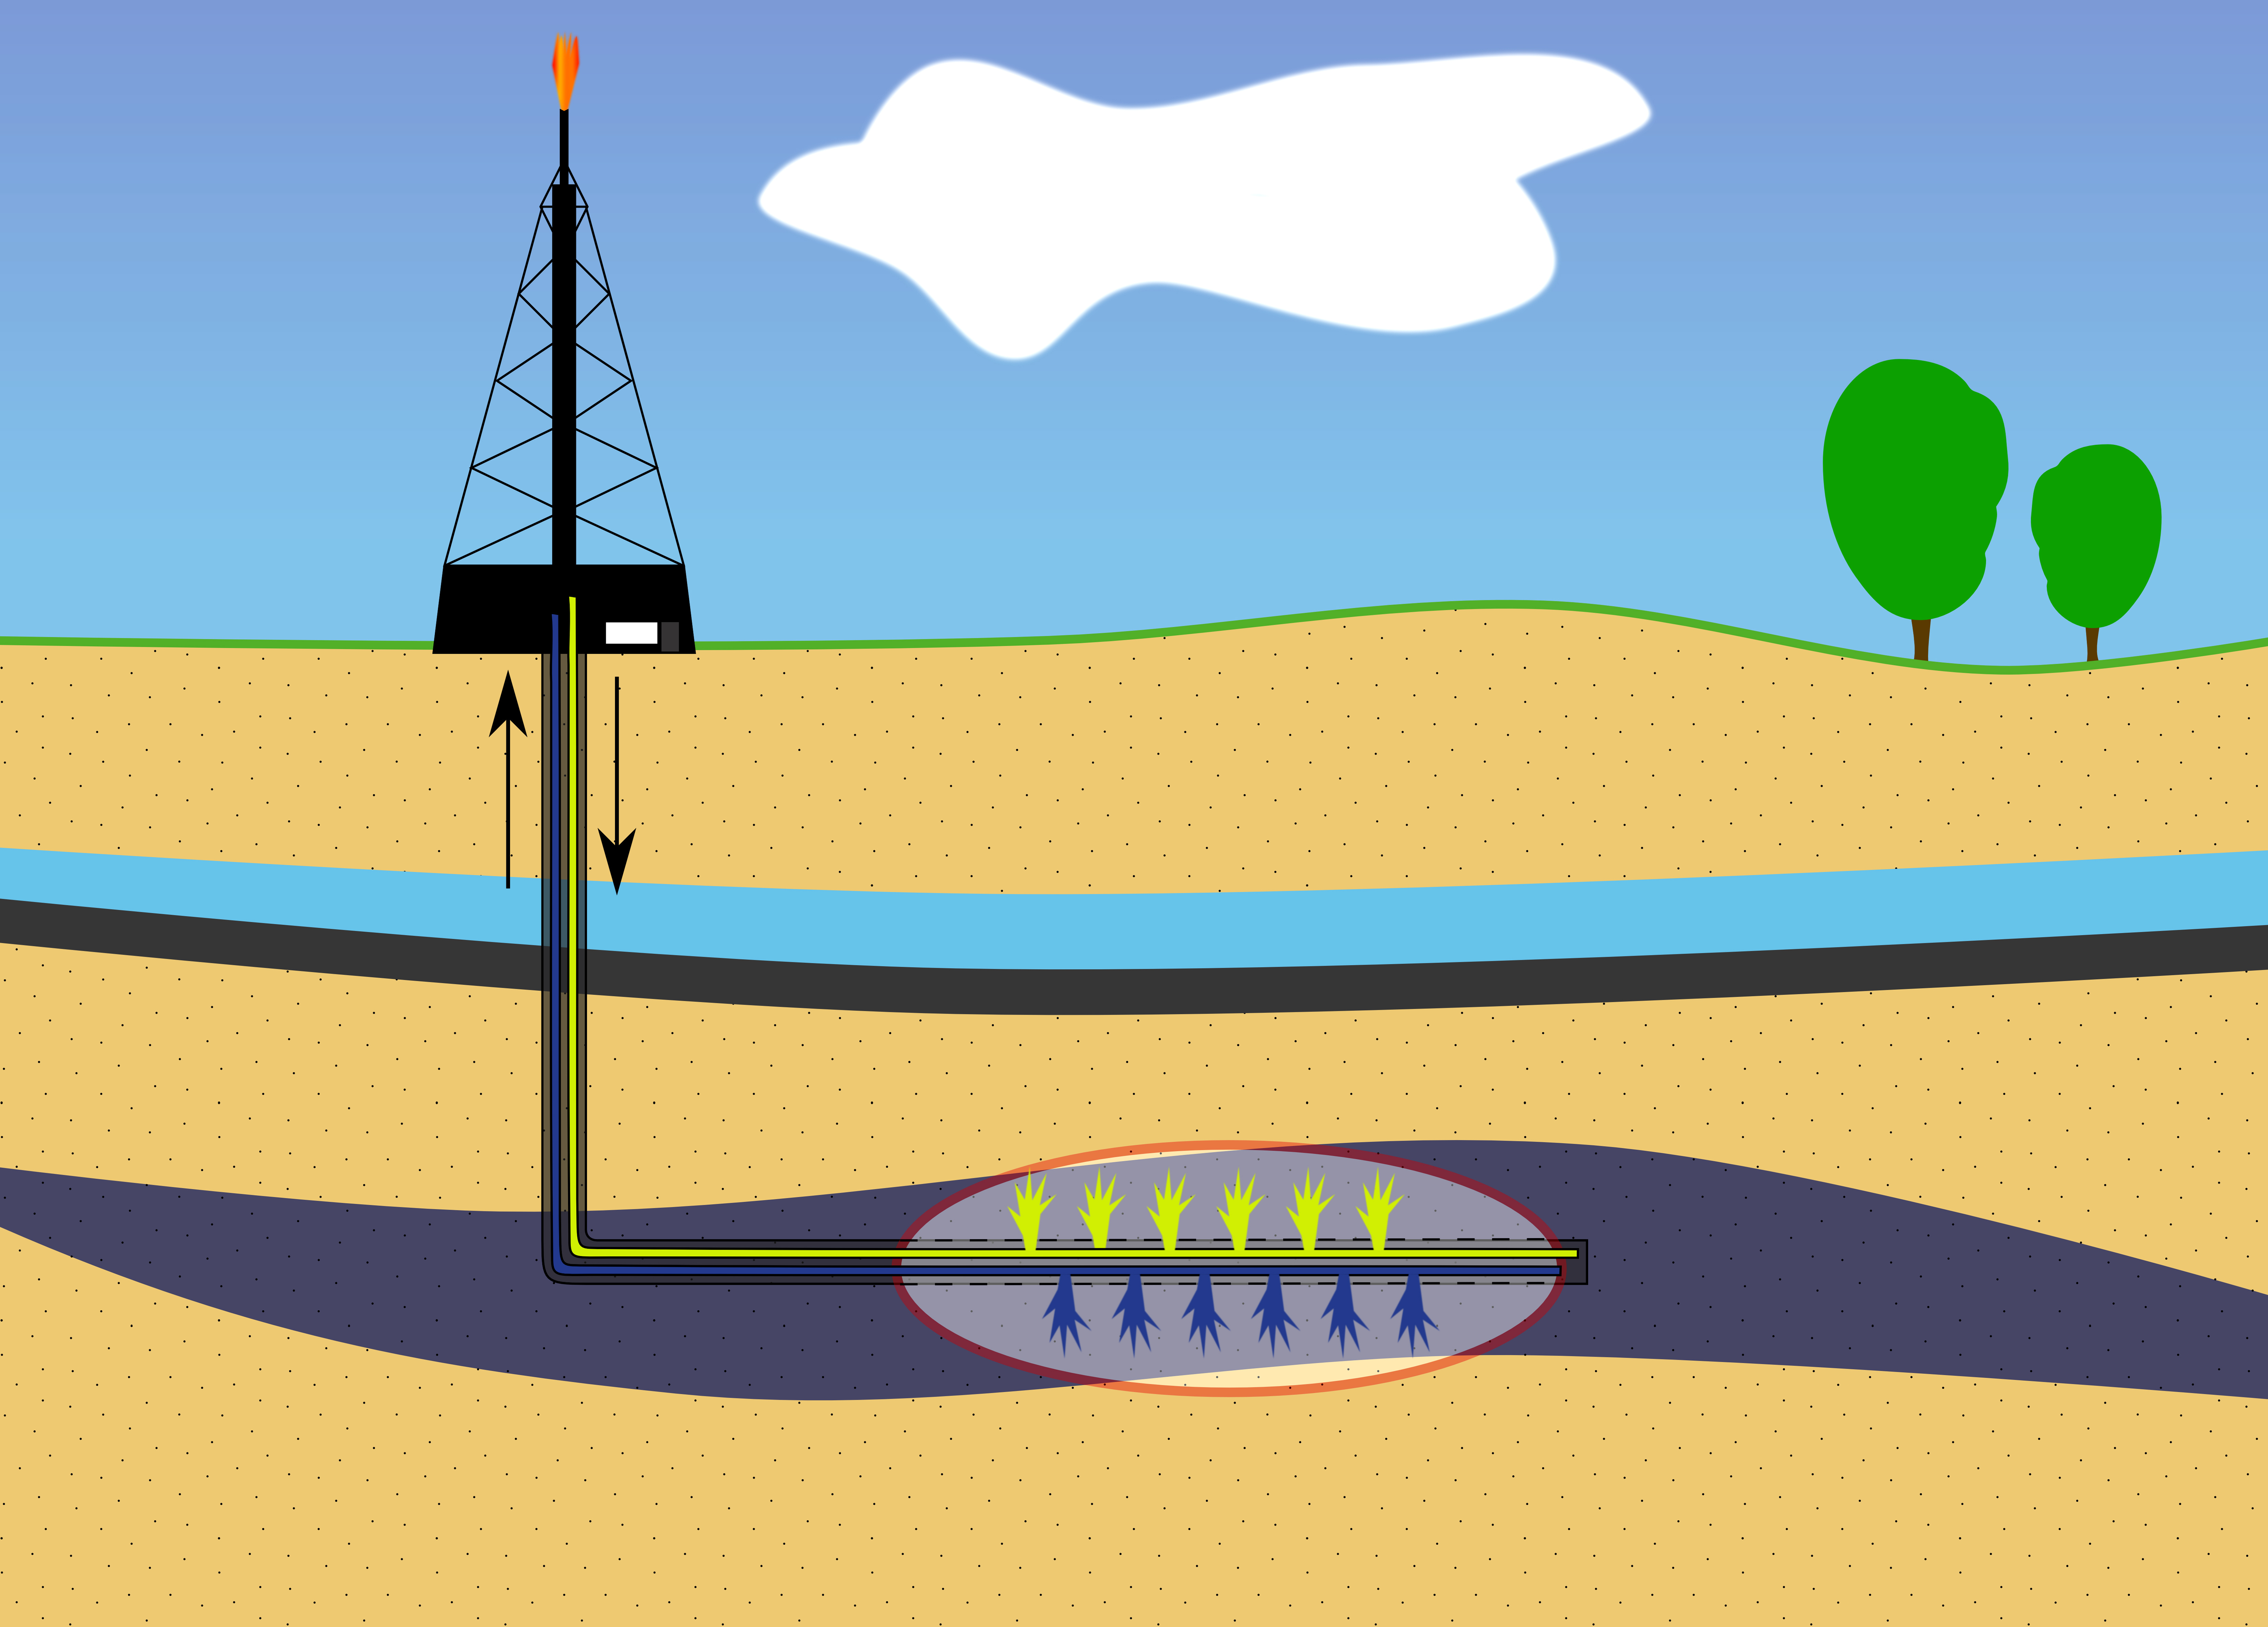 Illustration shows the concept but distorts the proportion. Water is usually 500 or 1500 feet down. Drilling is usually 10,000 or more feet underground. That leaves somewhere around 8,000 or 10,000 feet of solid rock separation. Image courtesy of Adobe Stock.